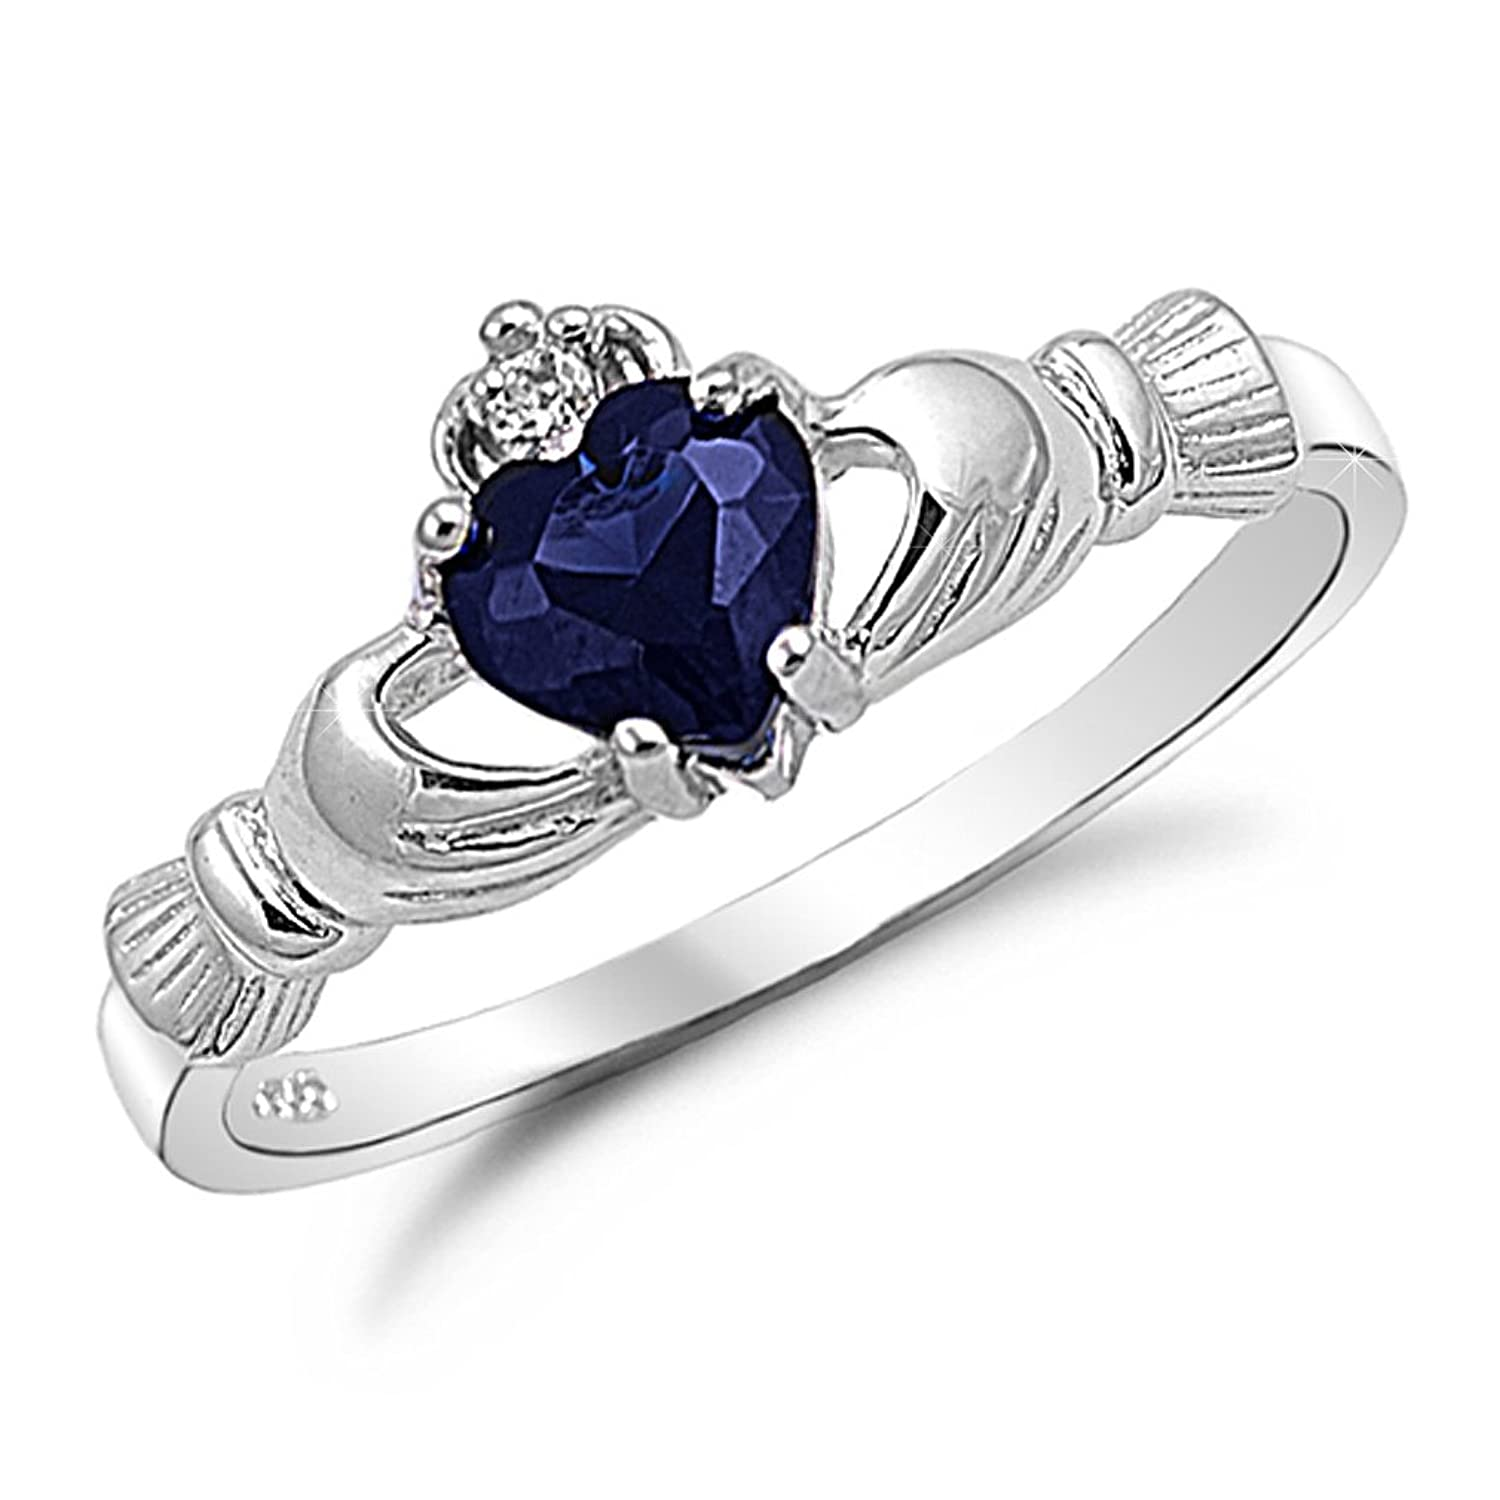 blue jeweler ben ring white sapphire topaz jewelry rings bridge stone